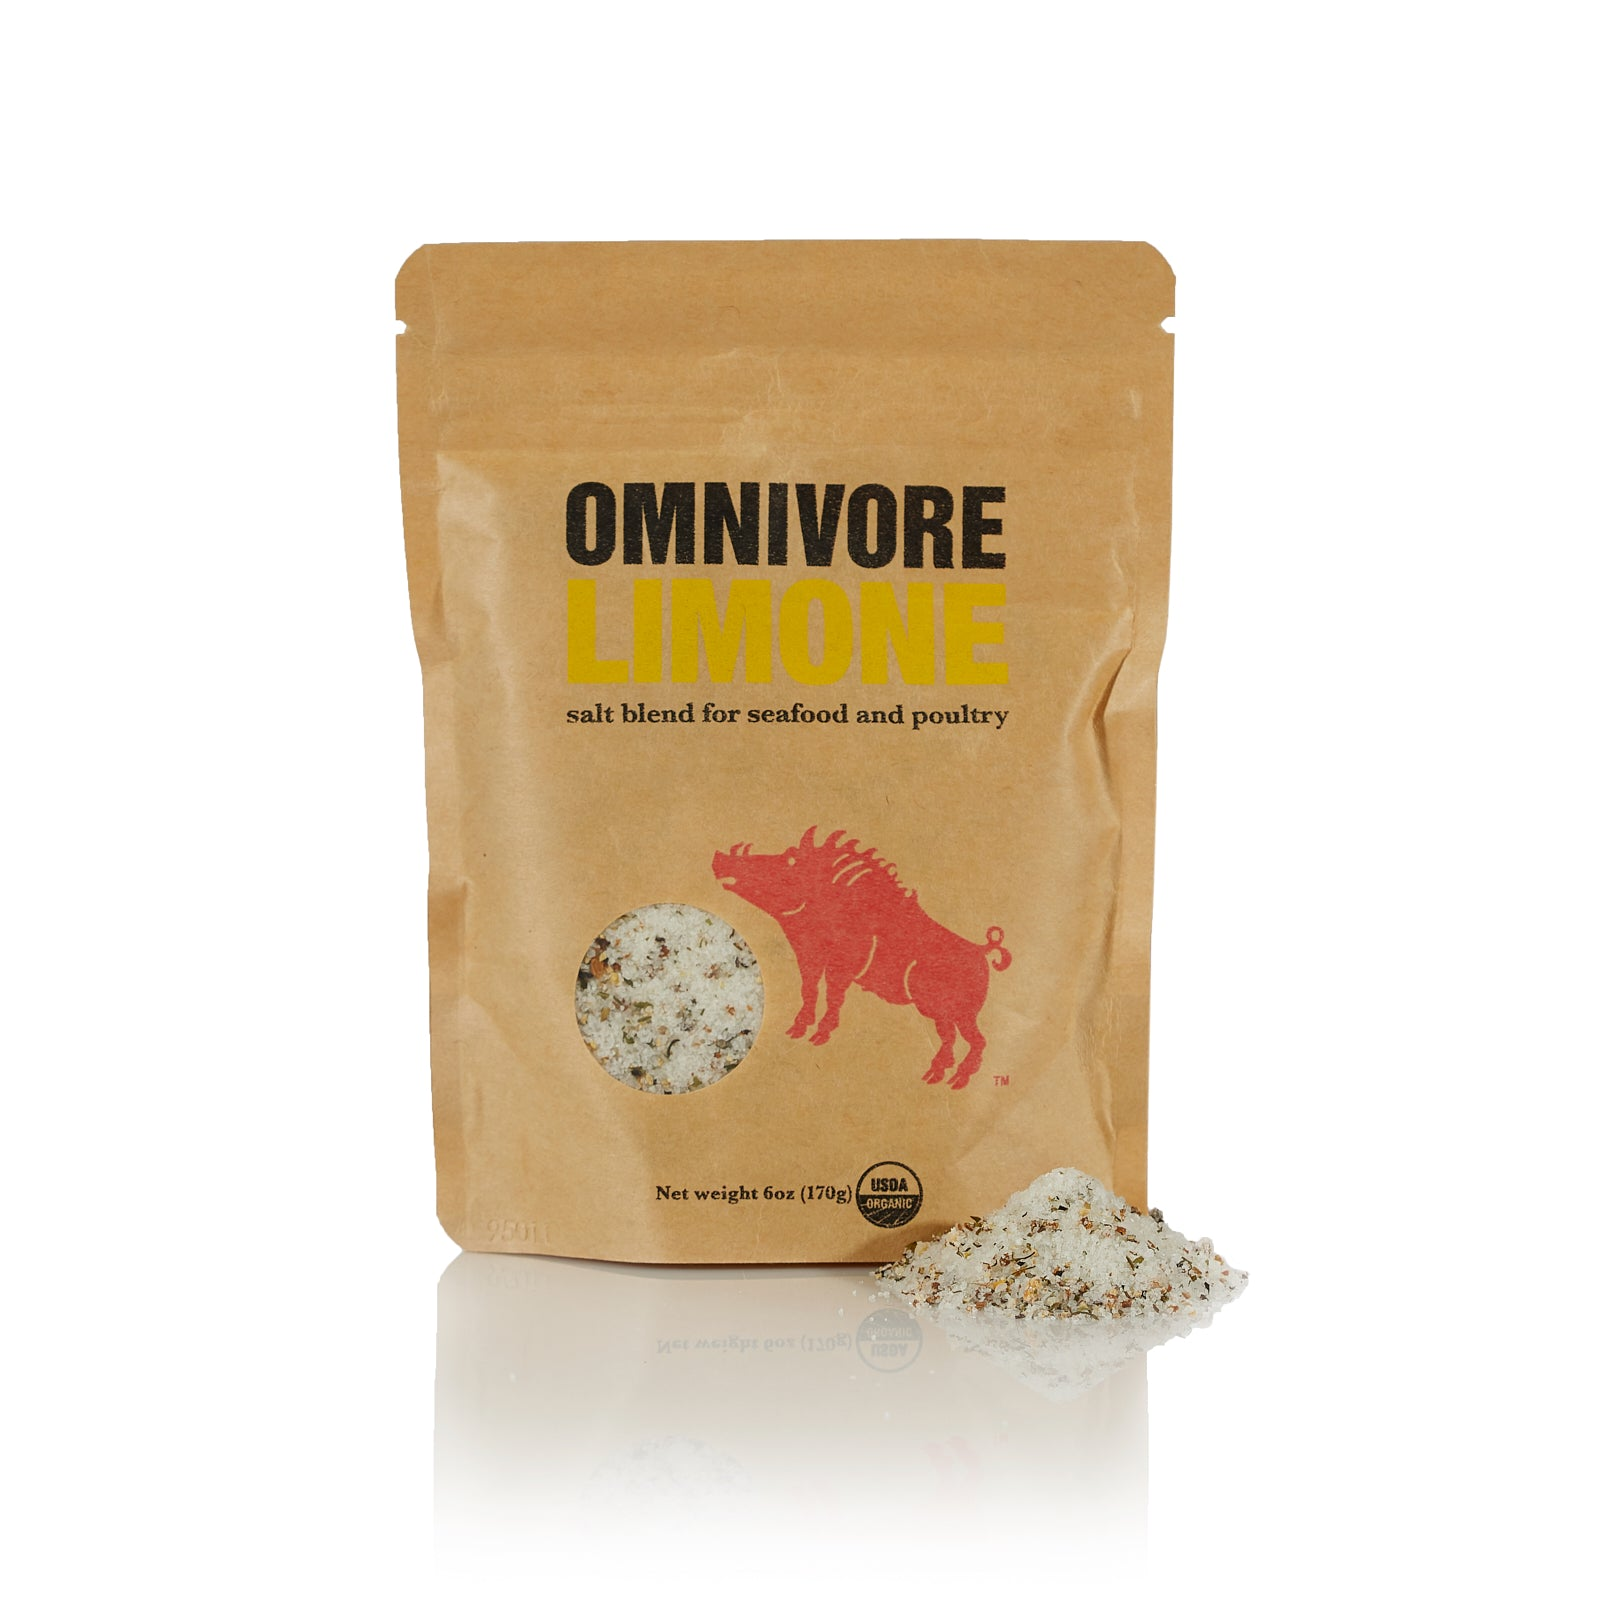 Omnivore by Angelo Garro, Limone Salt Blend